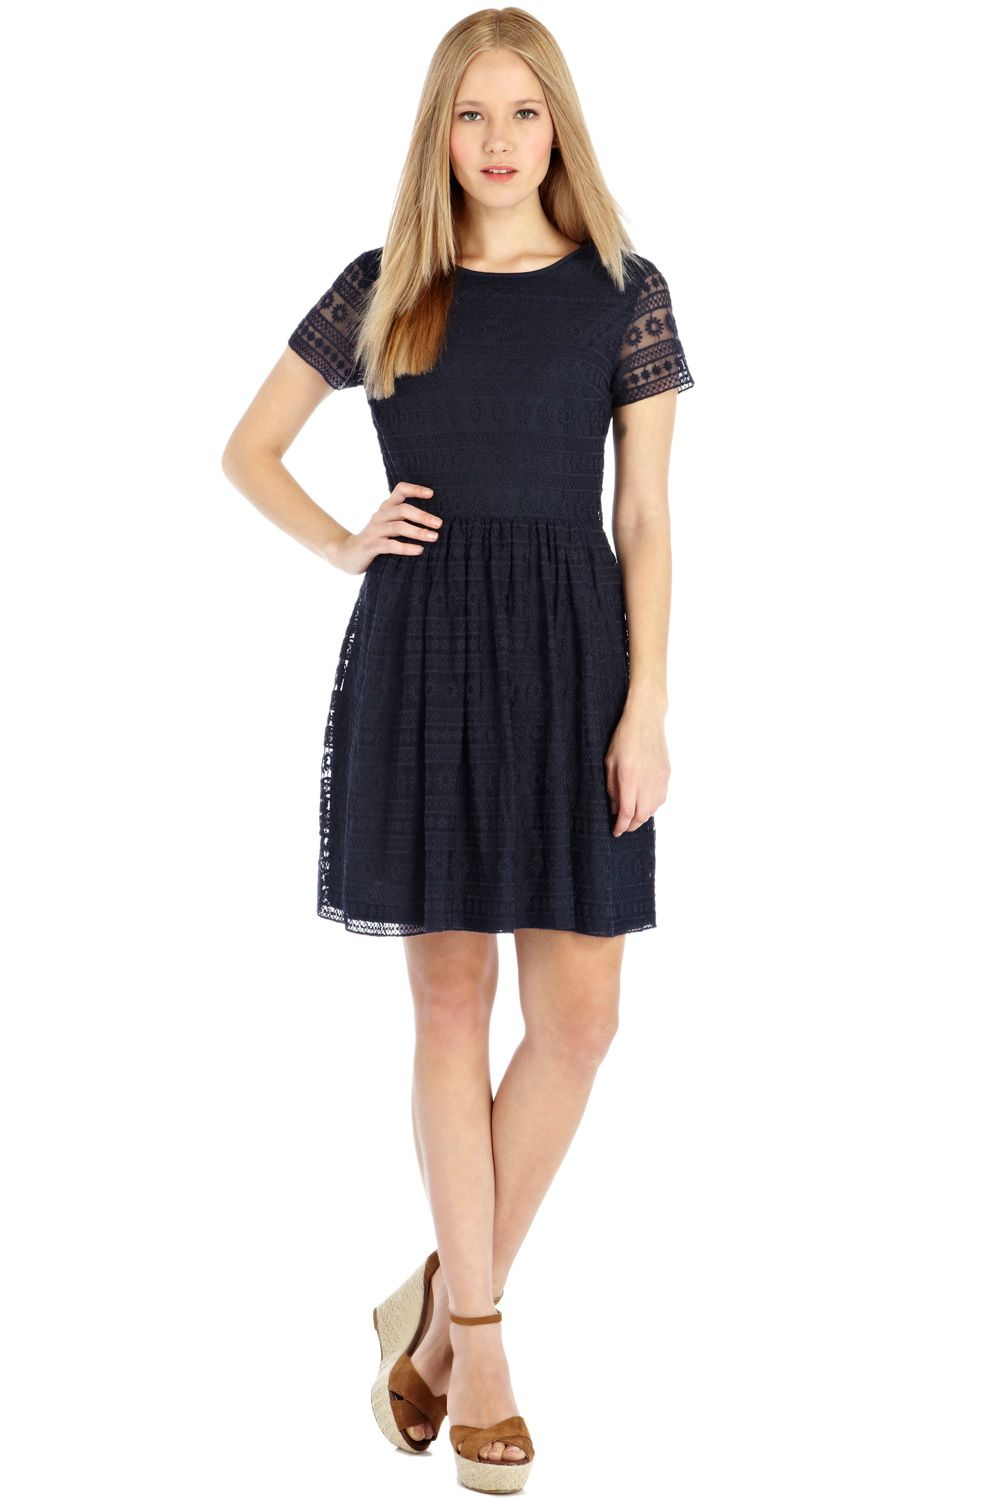 Daisy lace skater dress